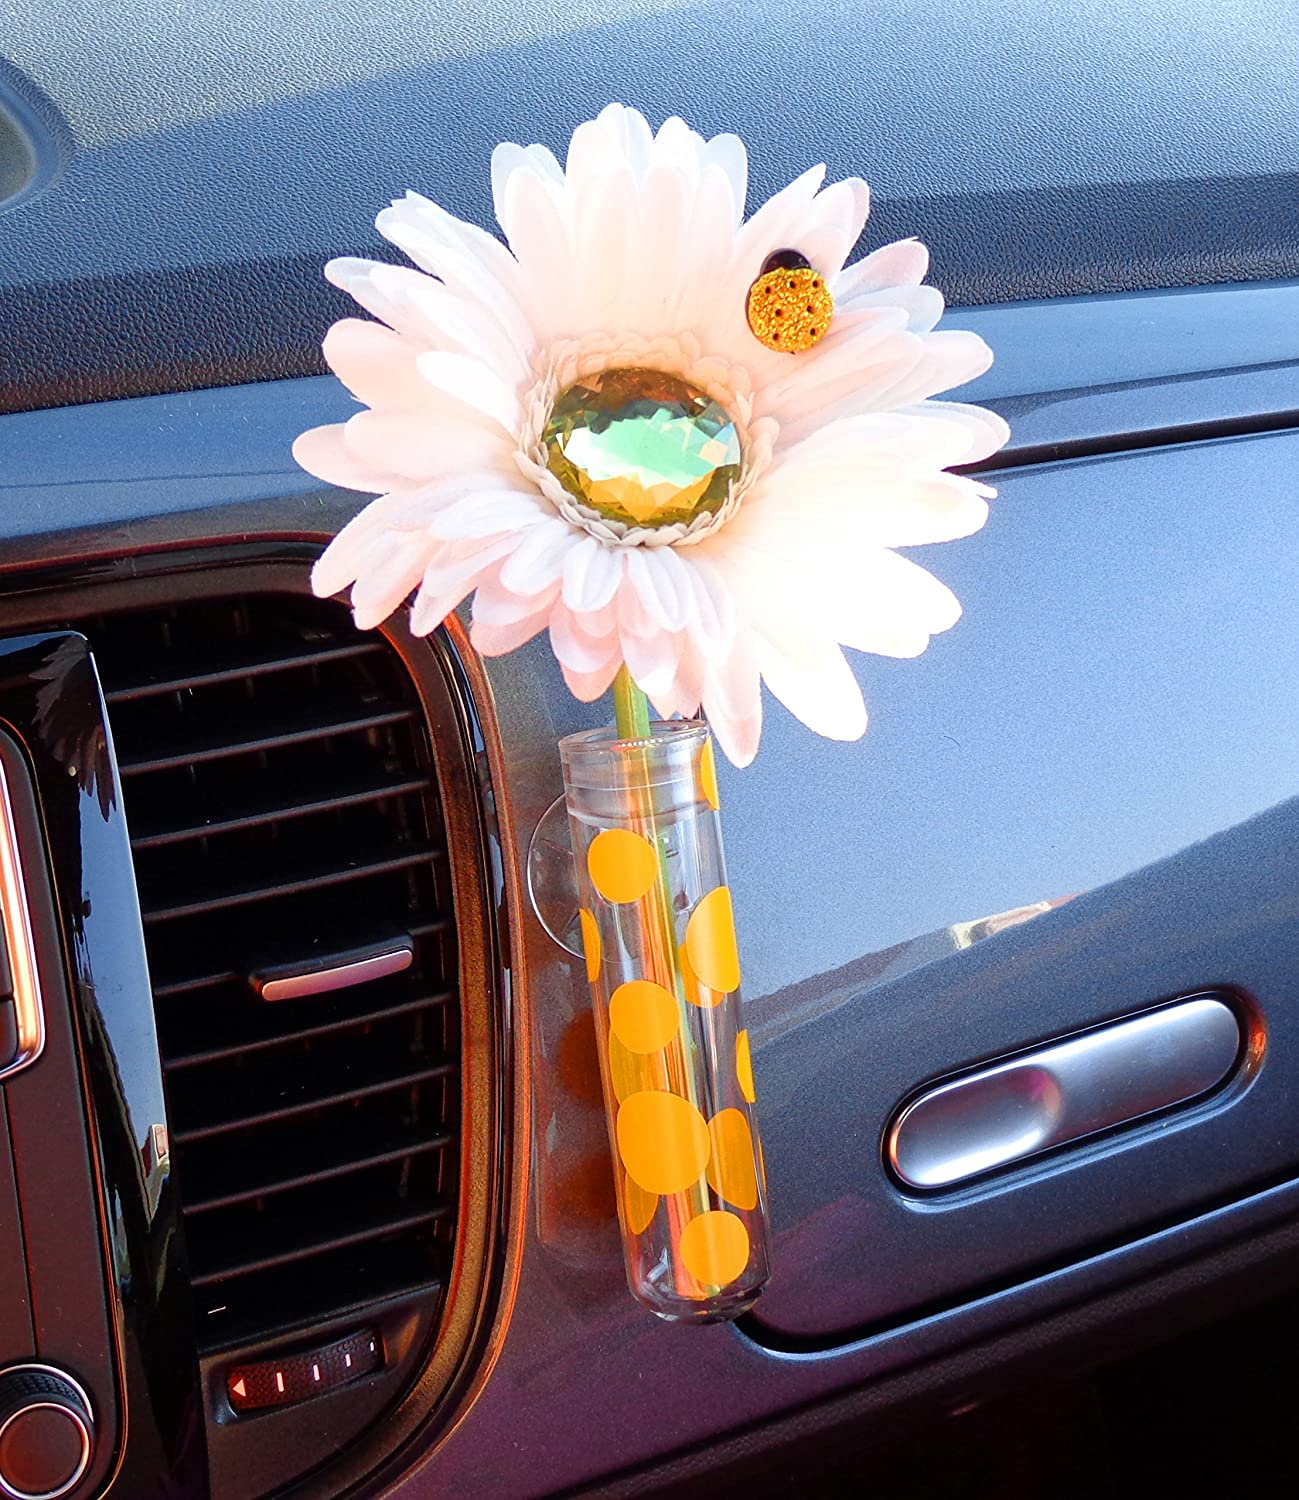 Amazon vw beetle flower white and yellow bling daisy with amazon vw beetle flower white and yellow bling daisy with universal vase automotive reviewsmspy